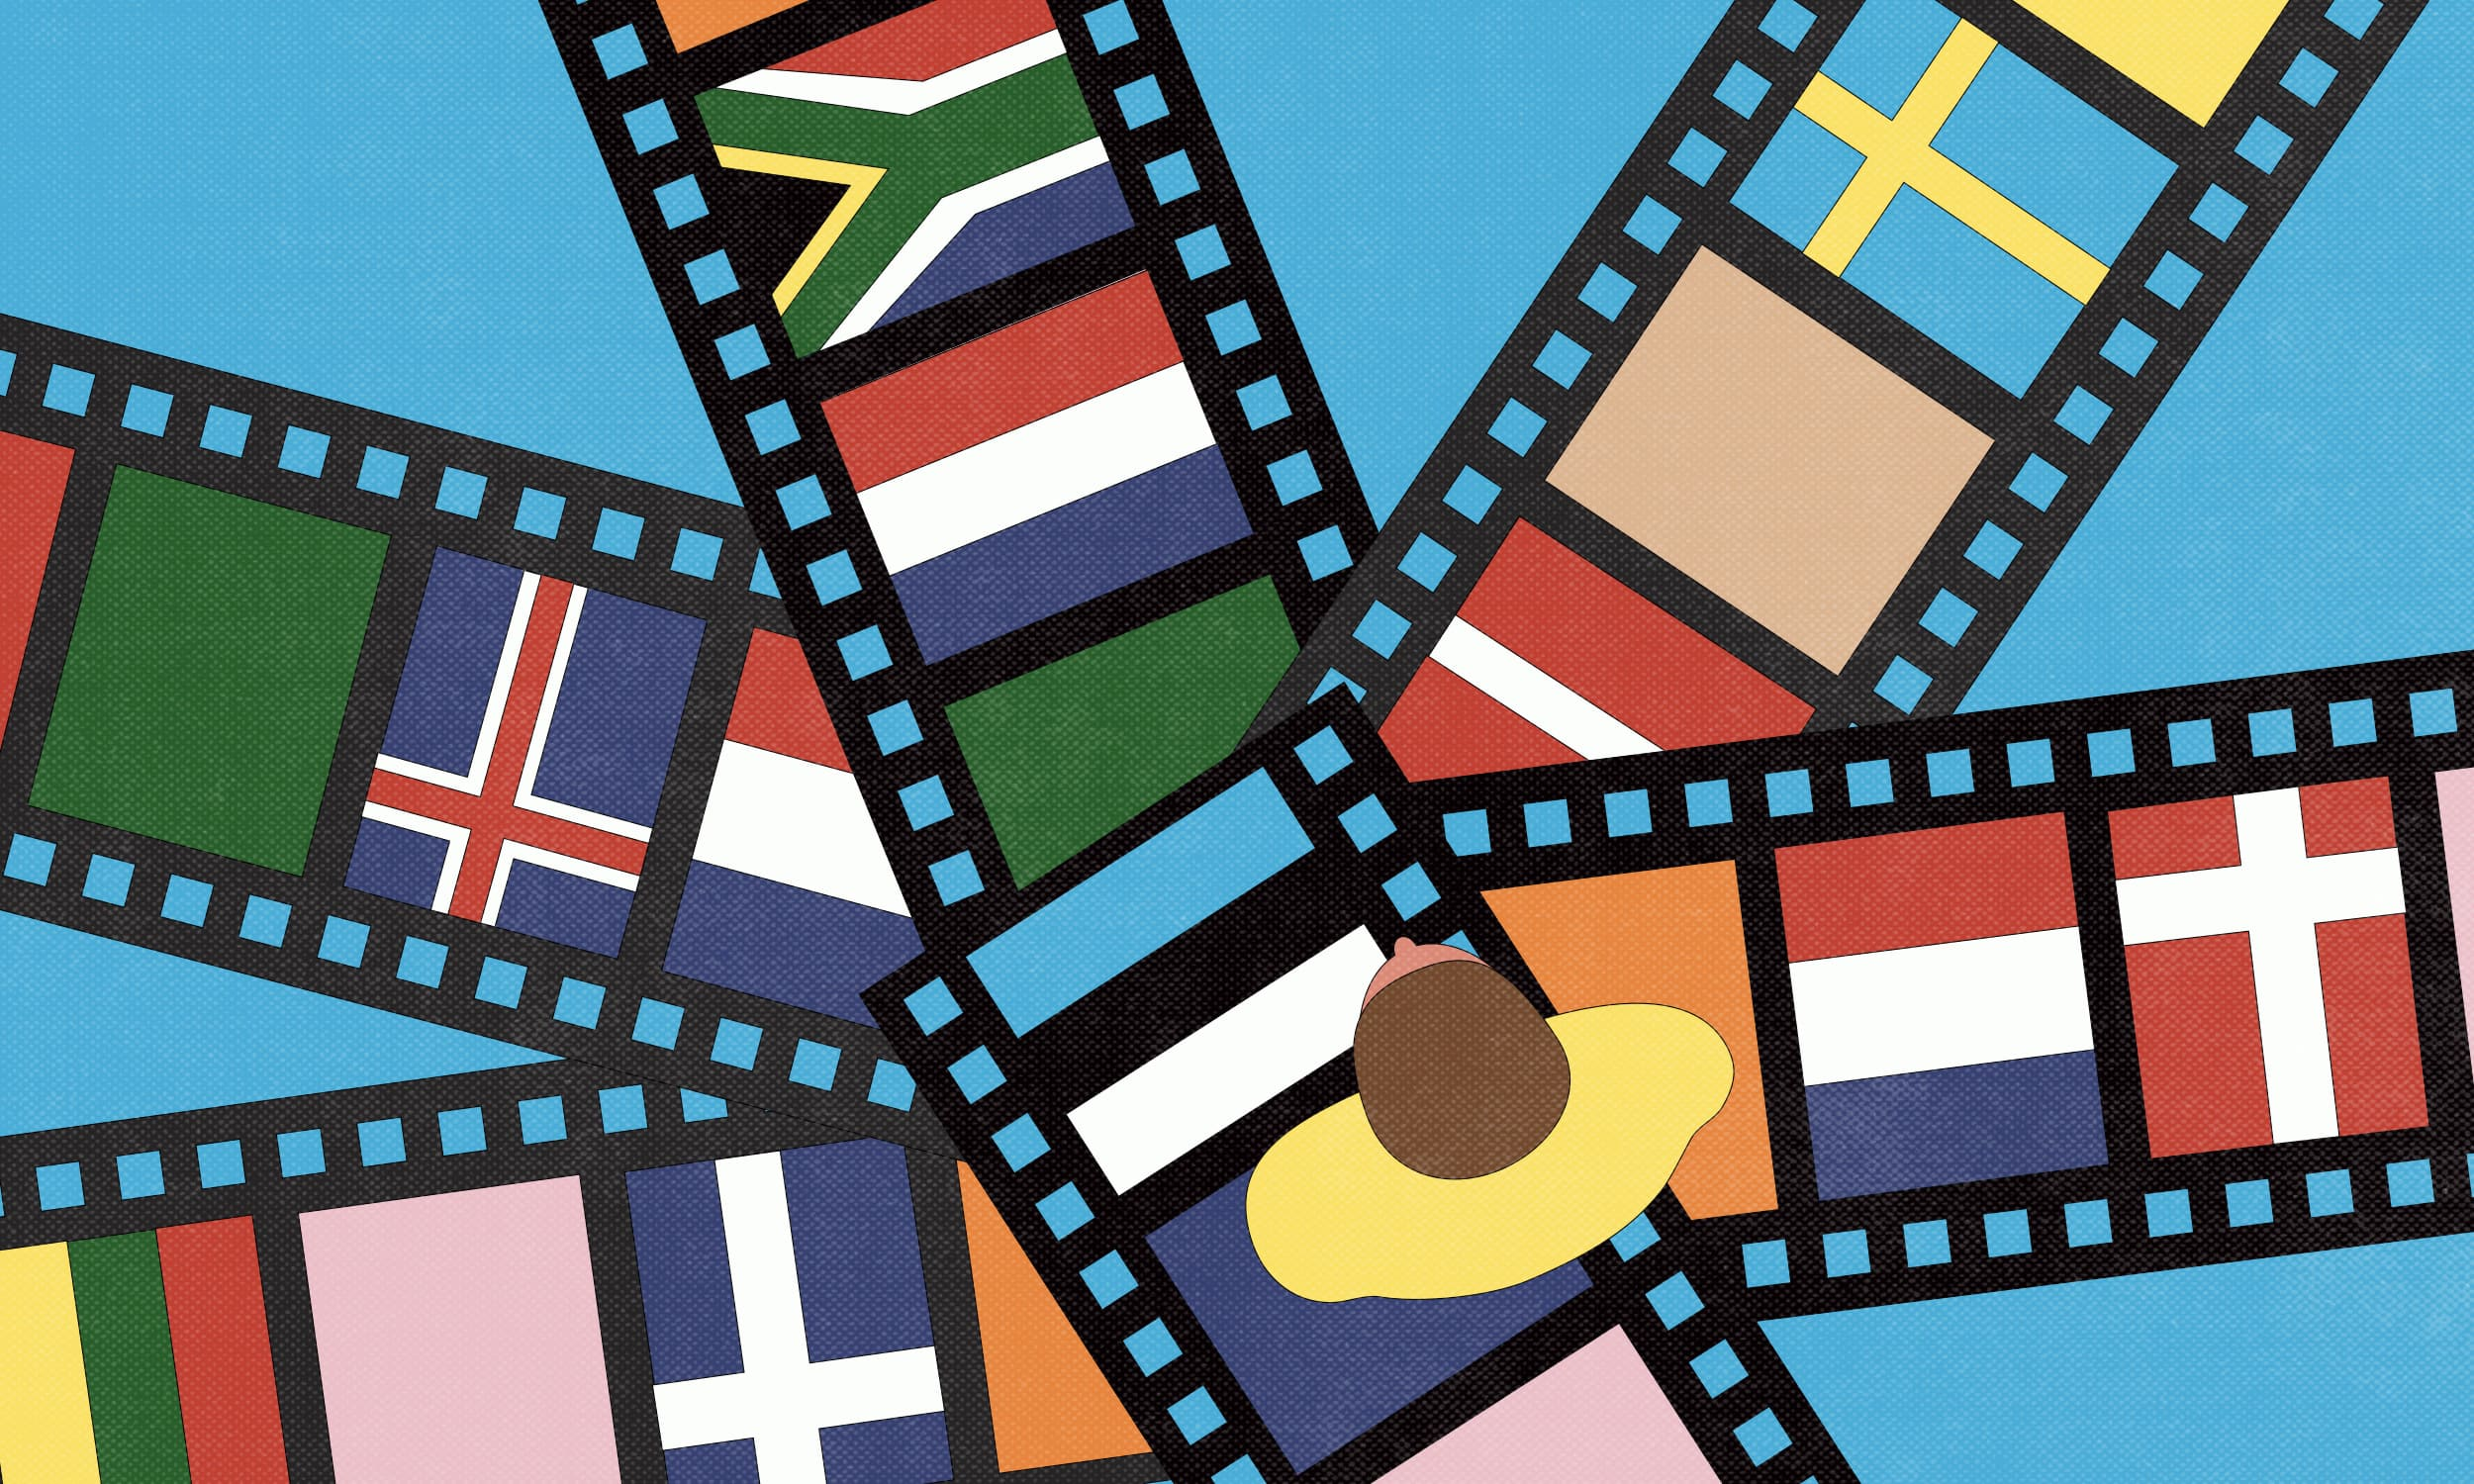 foreign_ott_streaming_services_canadian_content_export